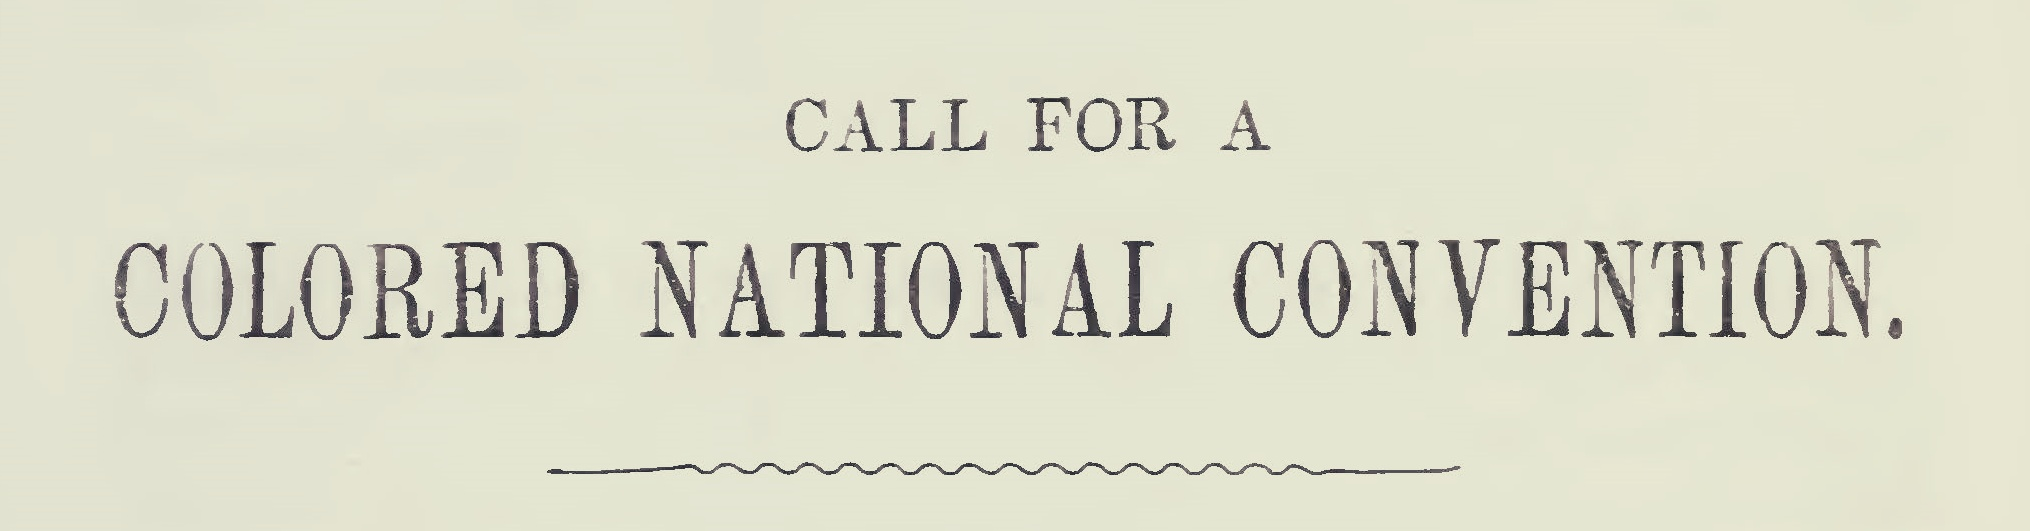 Pennington, James W.C., Call For a Colored National Convention Title Page.jpg